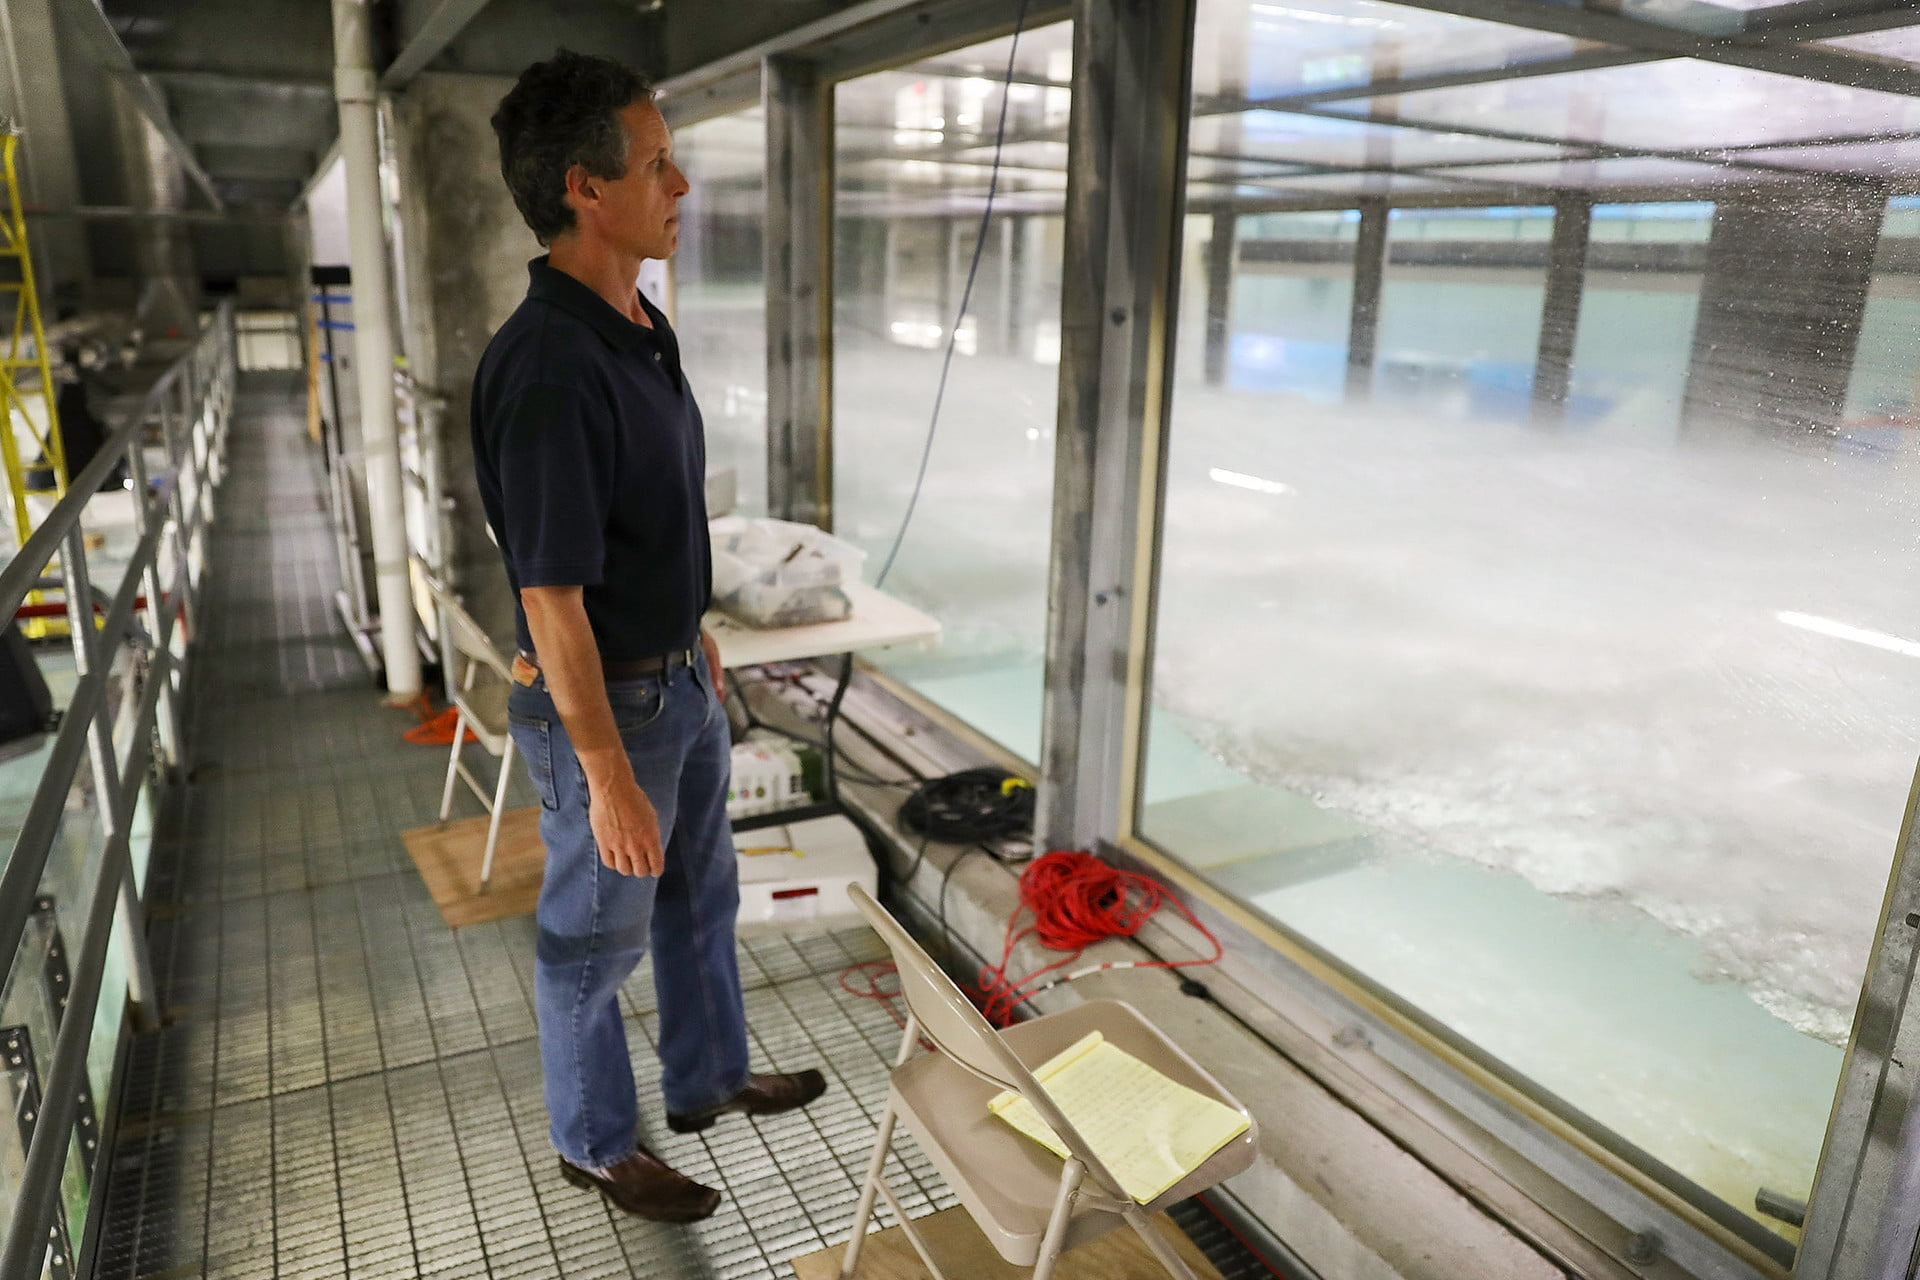 Conjuring catastrophes: Inside the world's largest hurricane simulator